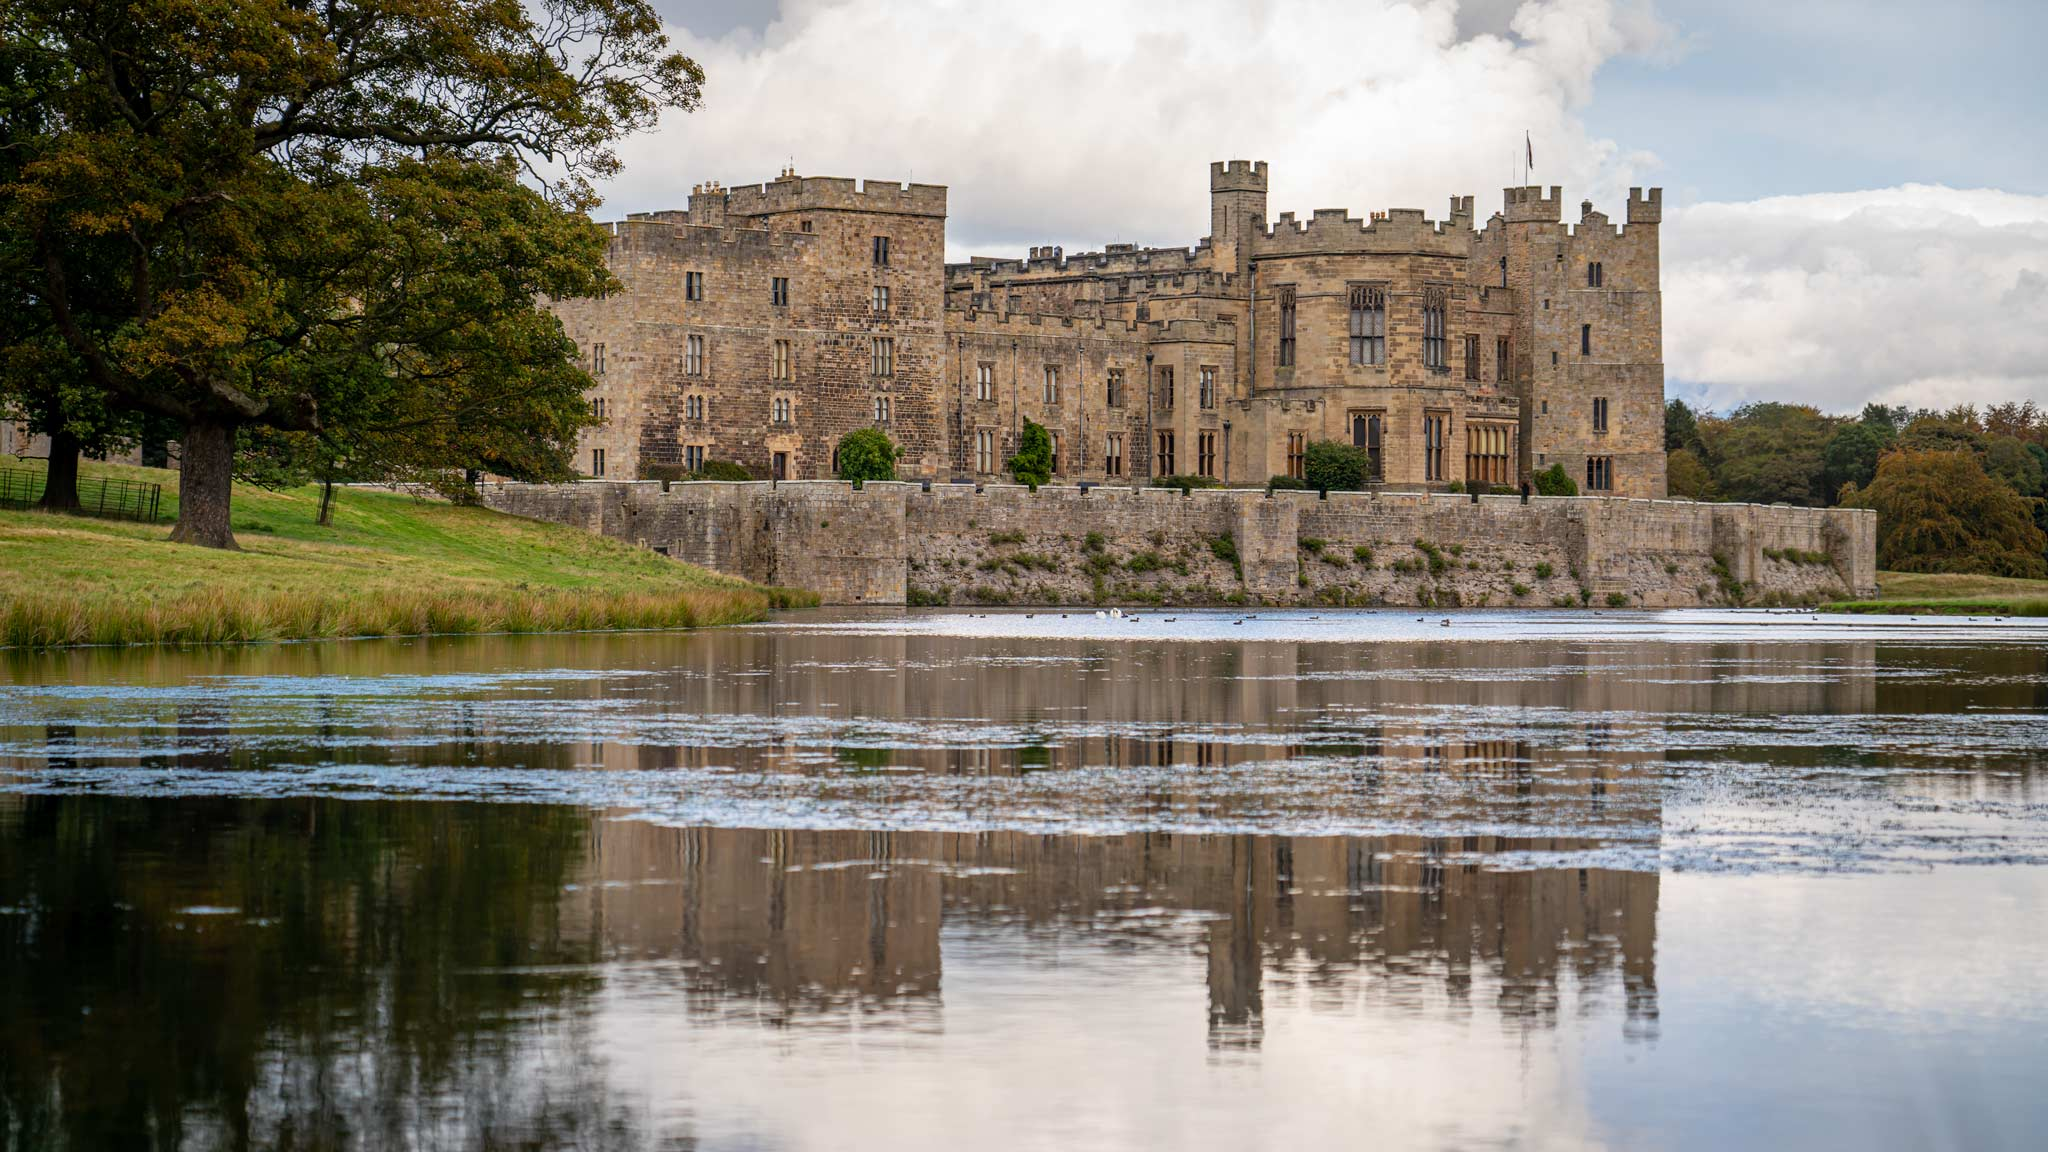 Raby Castle reflected on the water around it